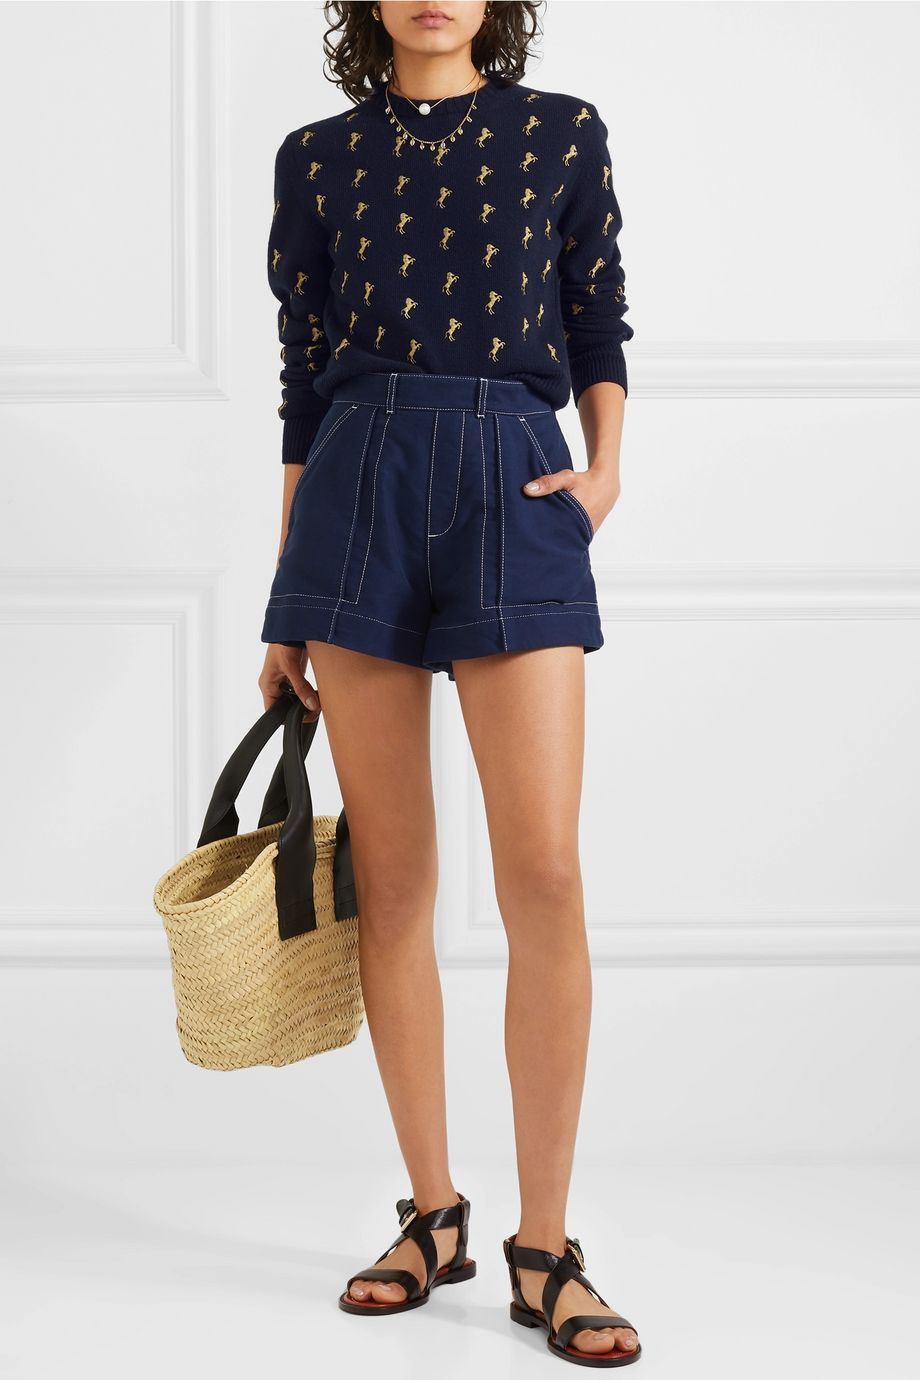 Chloé Embroidered wool-blend sweater